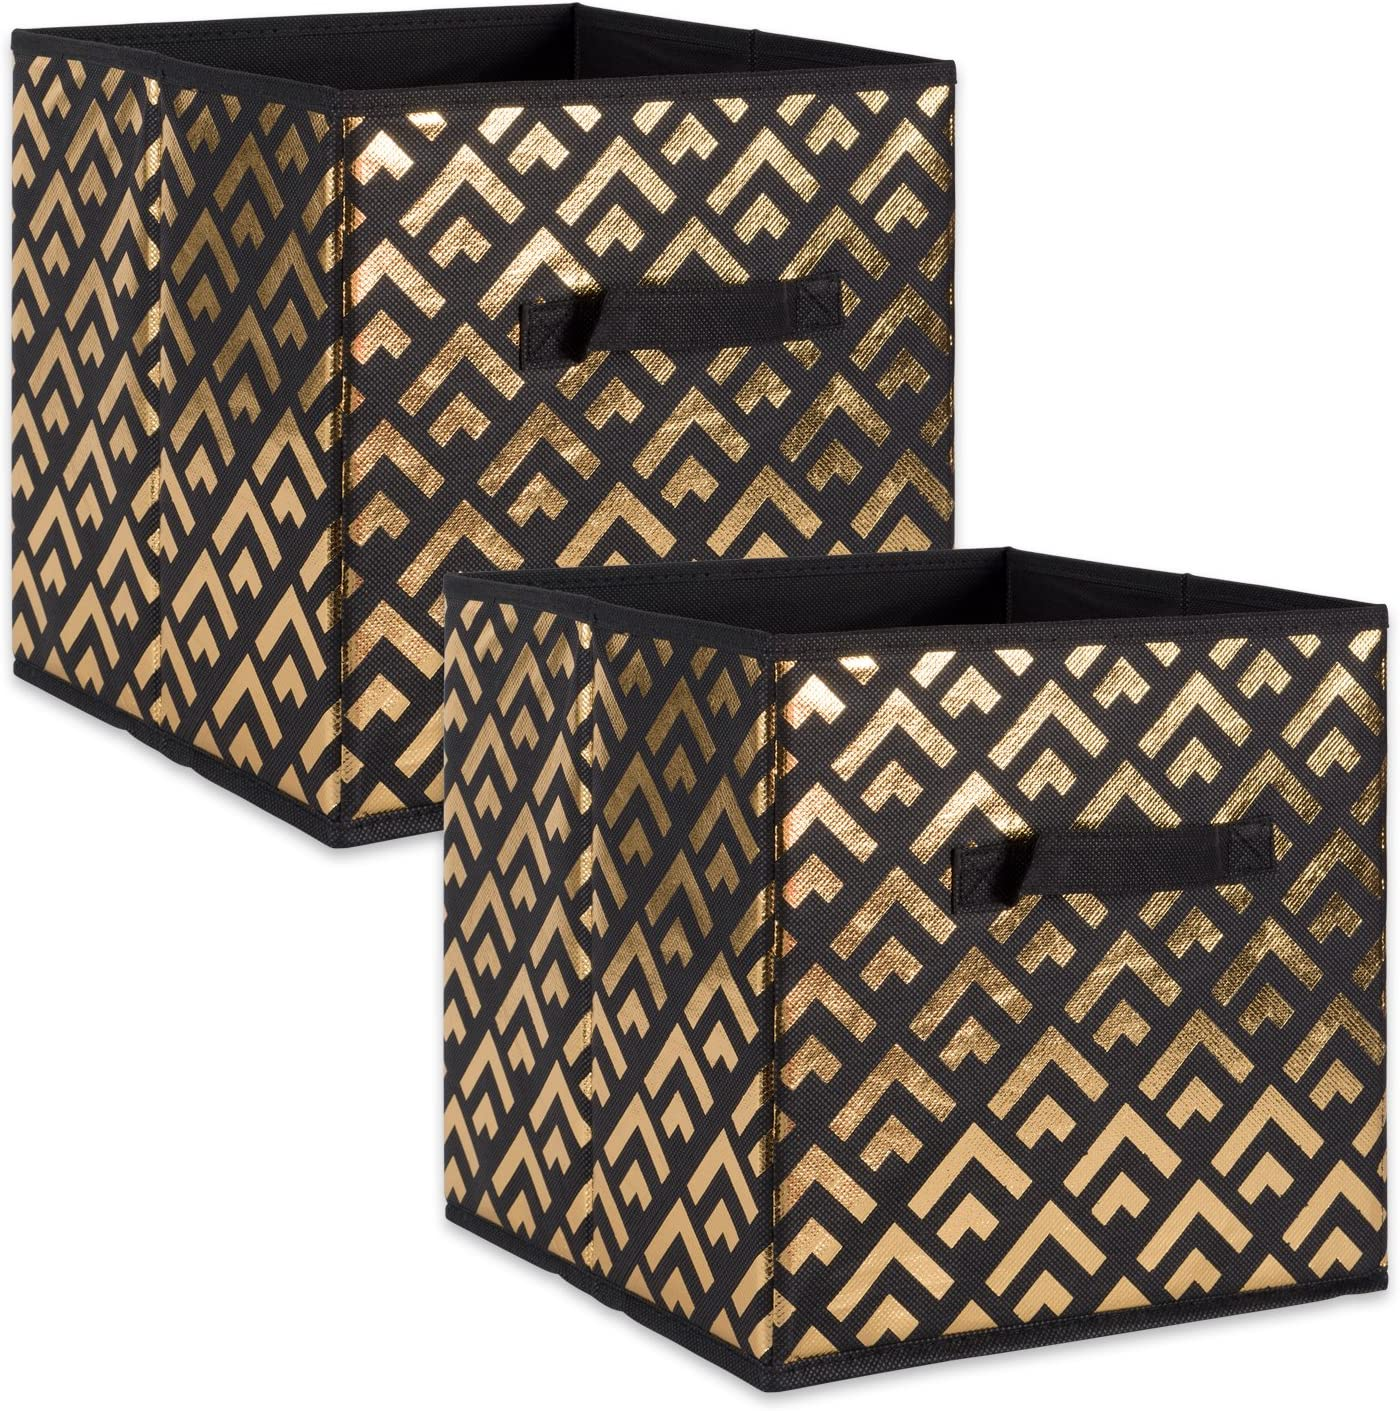 "DII Fabric Storage Bins for Nursery, Offices, & Home Organization, Containers Are Made To Fit Standard Cube Organizers (11x11x11"") Double Diamond Gold on Black- Set of 2"